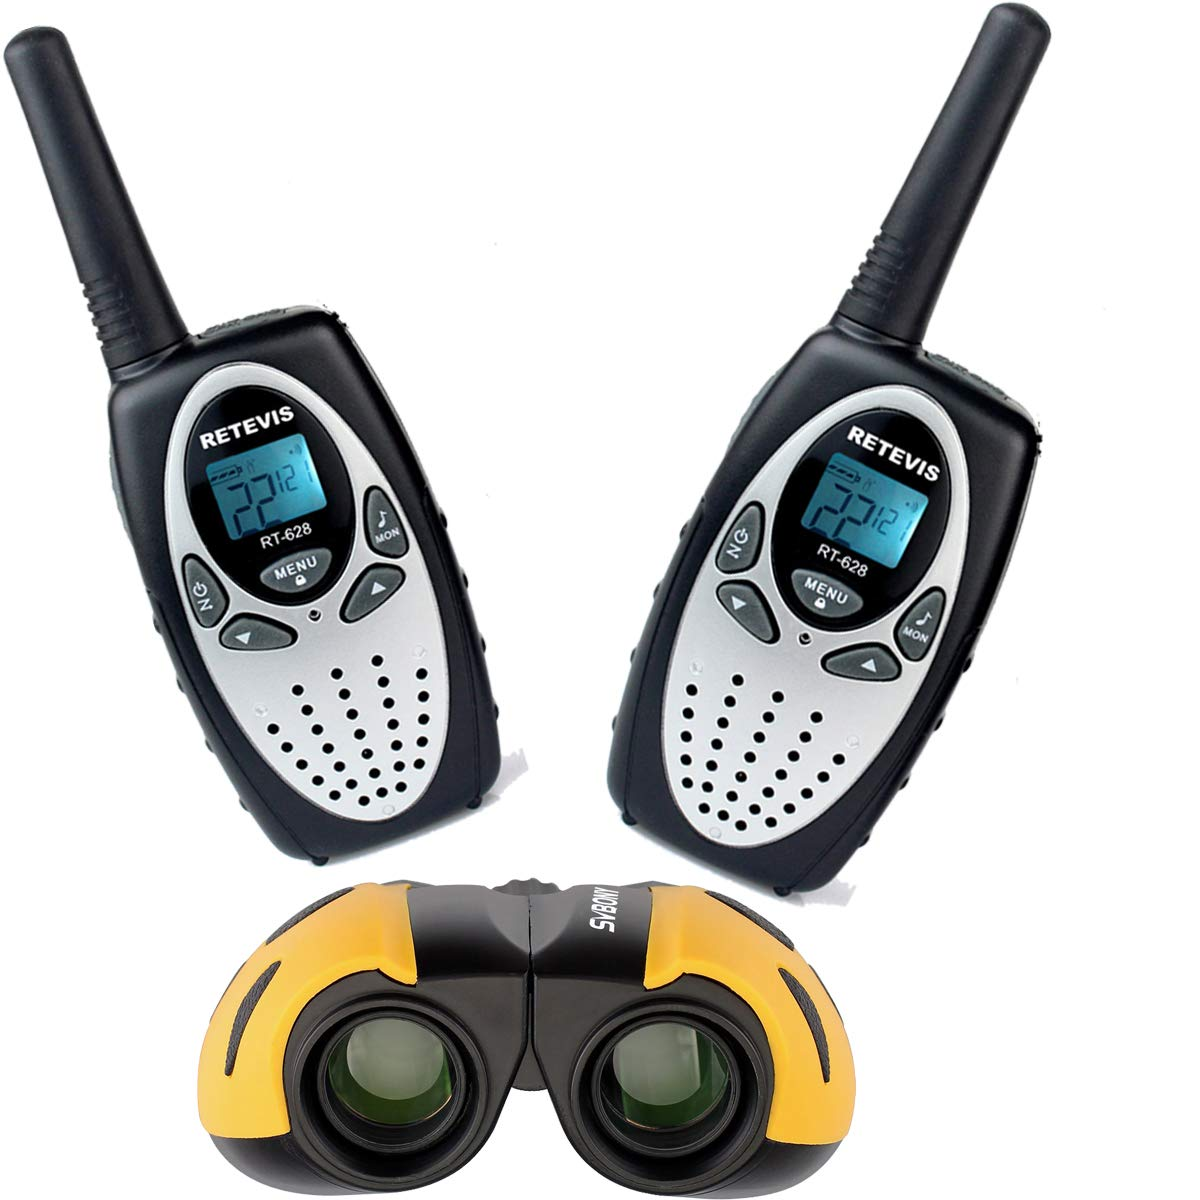 Retevis RT628 Kids Walkie Talkies 22 CH FRS License Free Toy Walkie Talkies (Silvery,2 Pack) with 8X21 Kids Binocular for Outdoor Play (1 Pack) (Yellow)